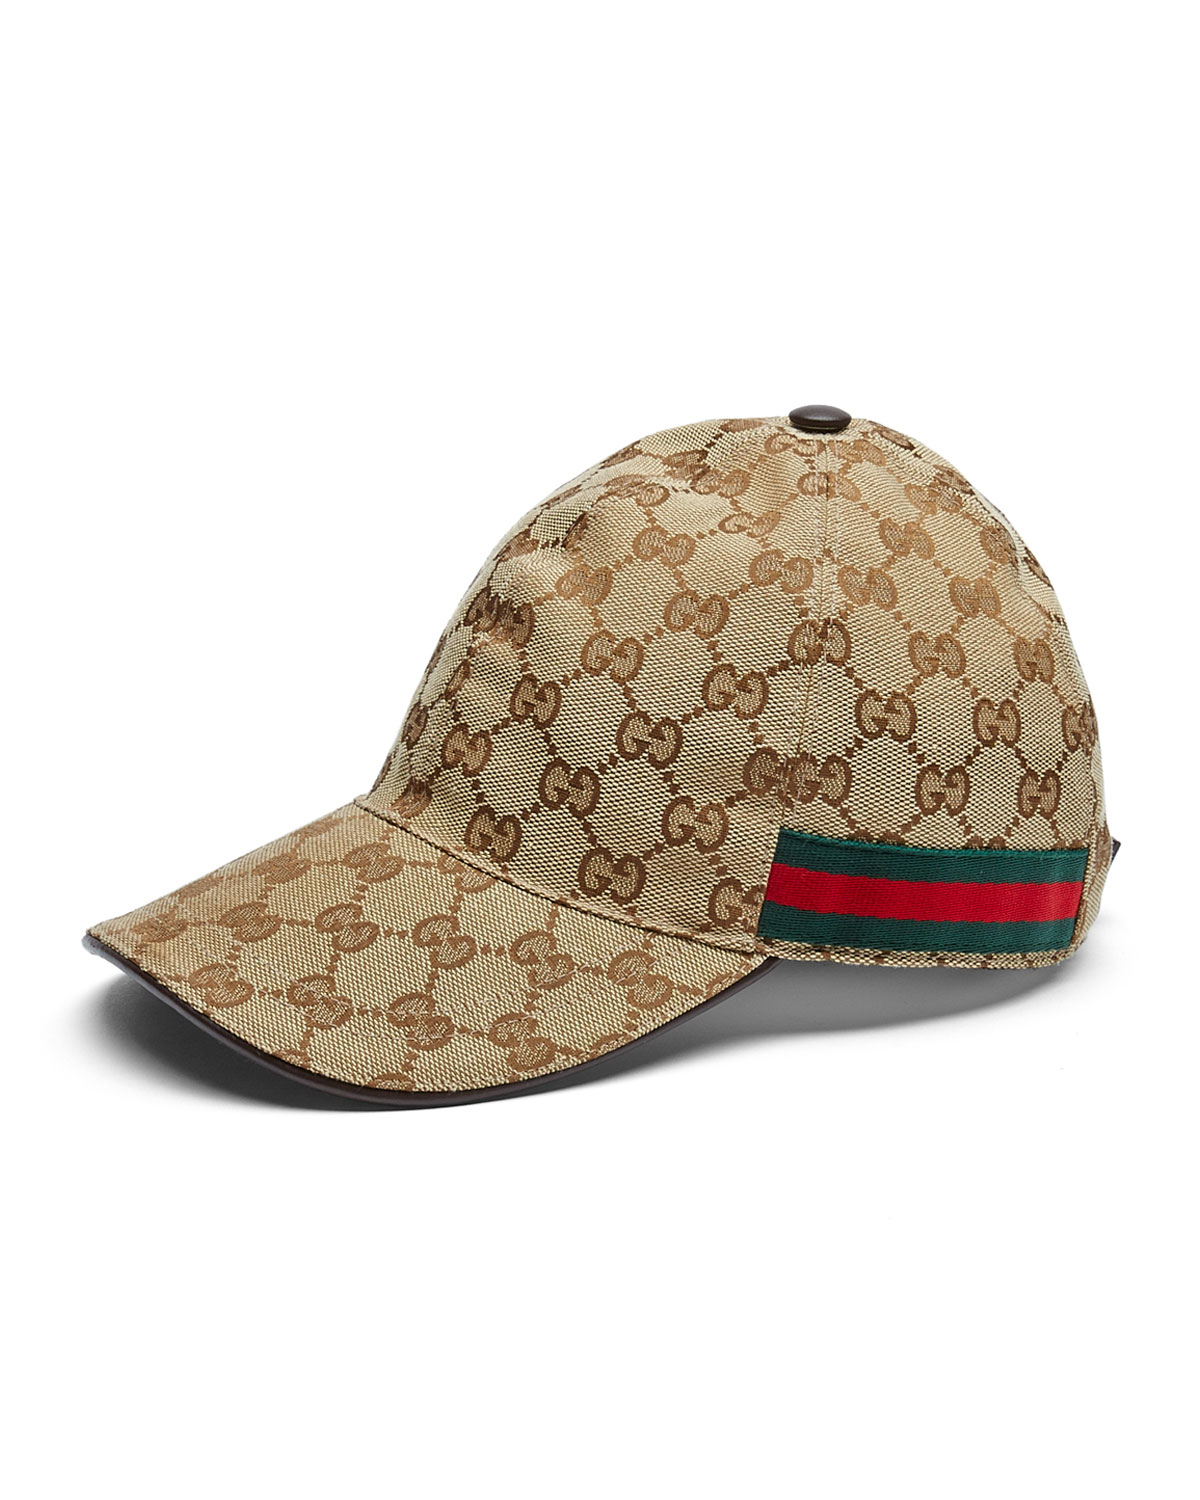 Lyst - Gucci Canvas Baseball Hat in Brown for Men 20a42533d1ca